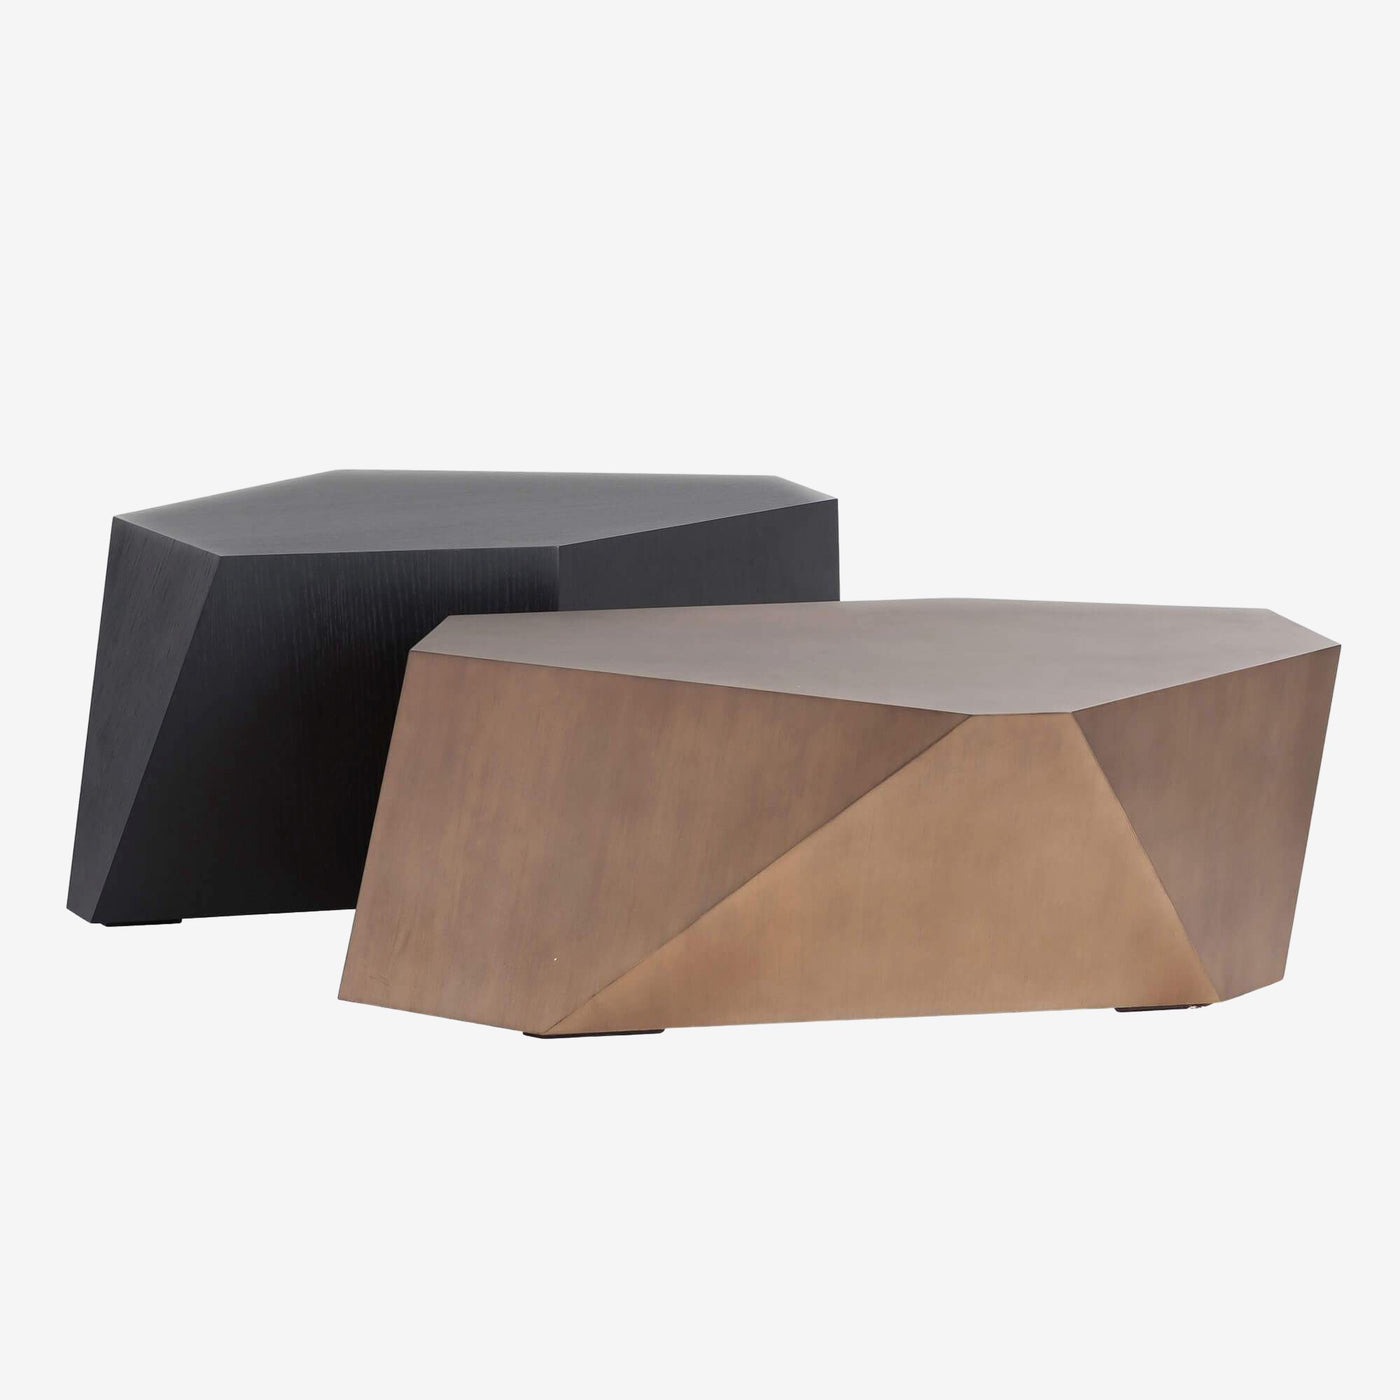 Anacapri Side Table - Set of 2